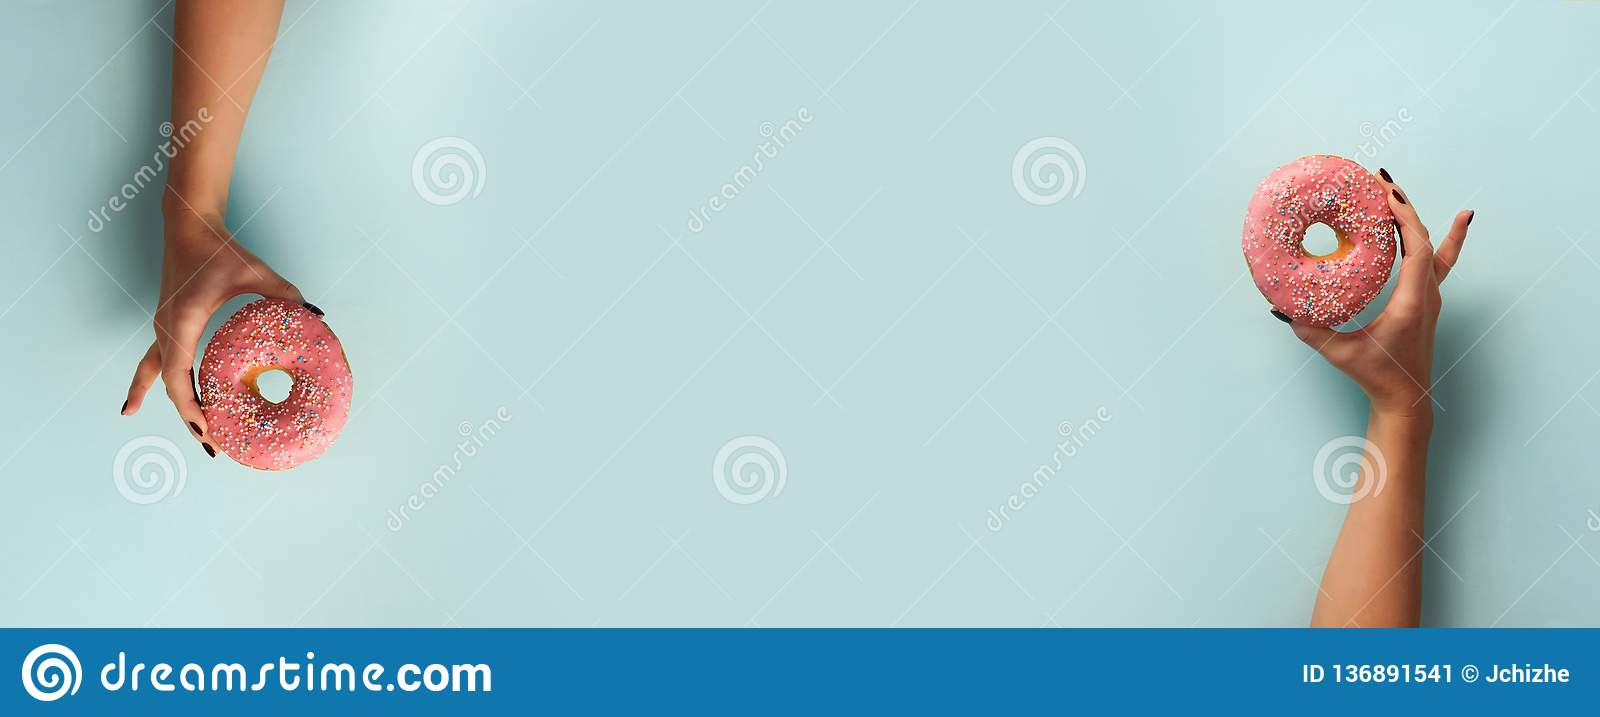 Female hand holding sweet donut over blue background. Top view, flat lay. Weight lost, sport, fitness, diet concept. Banner with